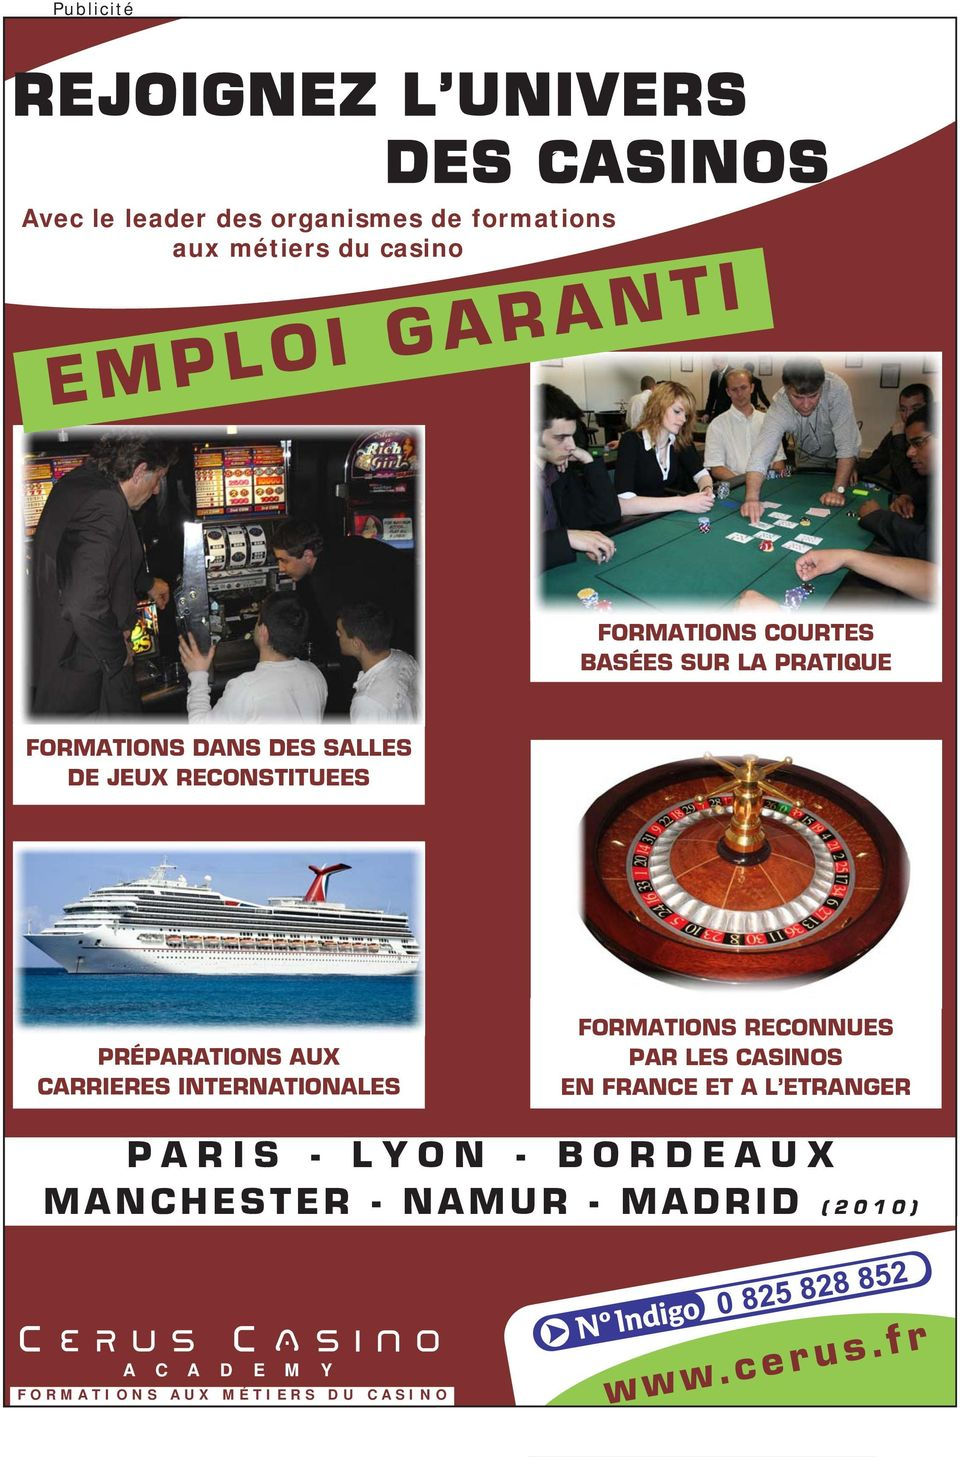 AUX CARRIERES INTERNATIONALES FORMATIONS RECONNUES PAR LES CASINOS EN FRANCE ET A L ETRANGER PARIS - LYON -